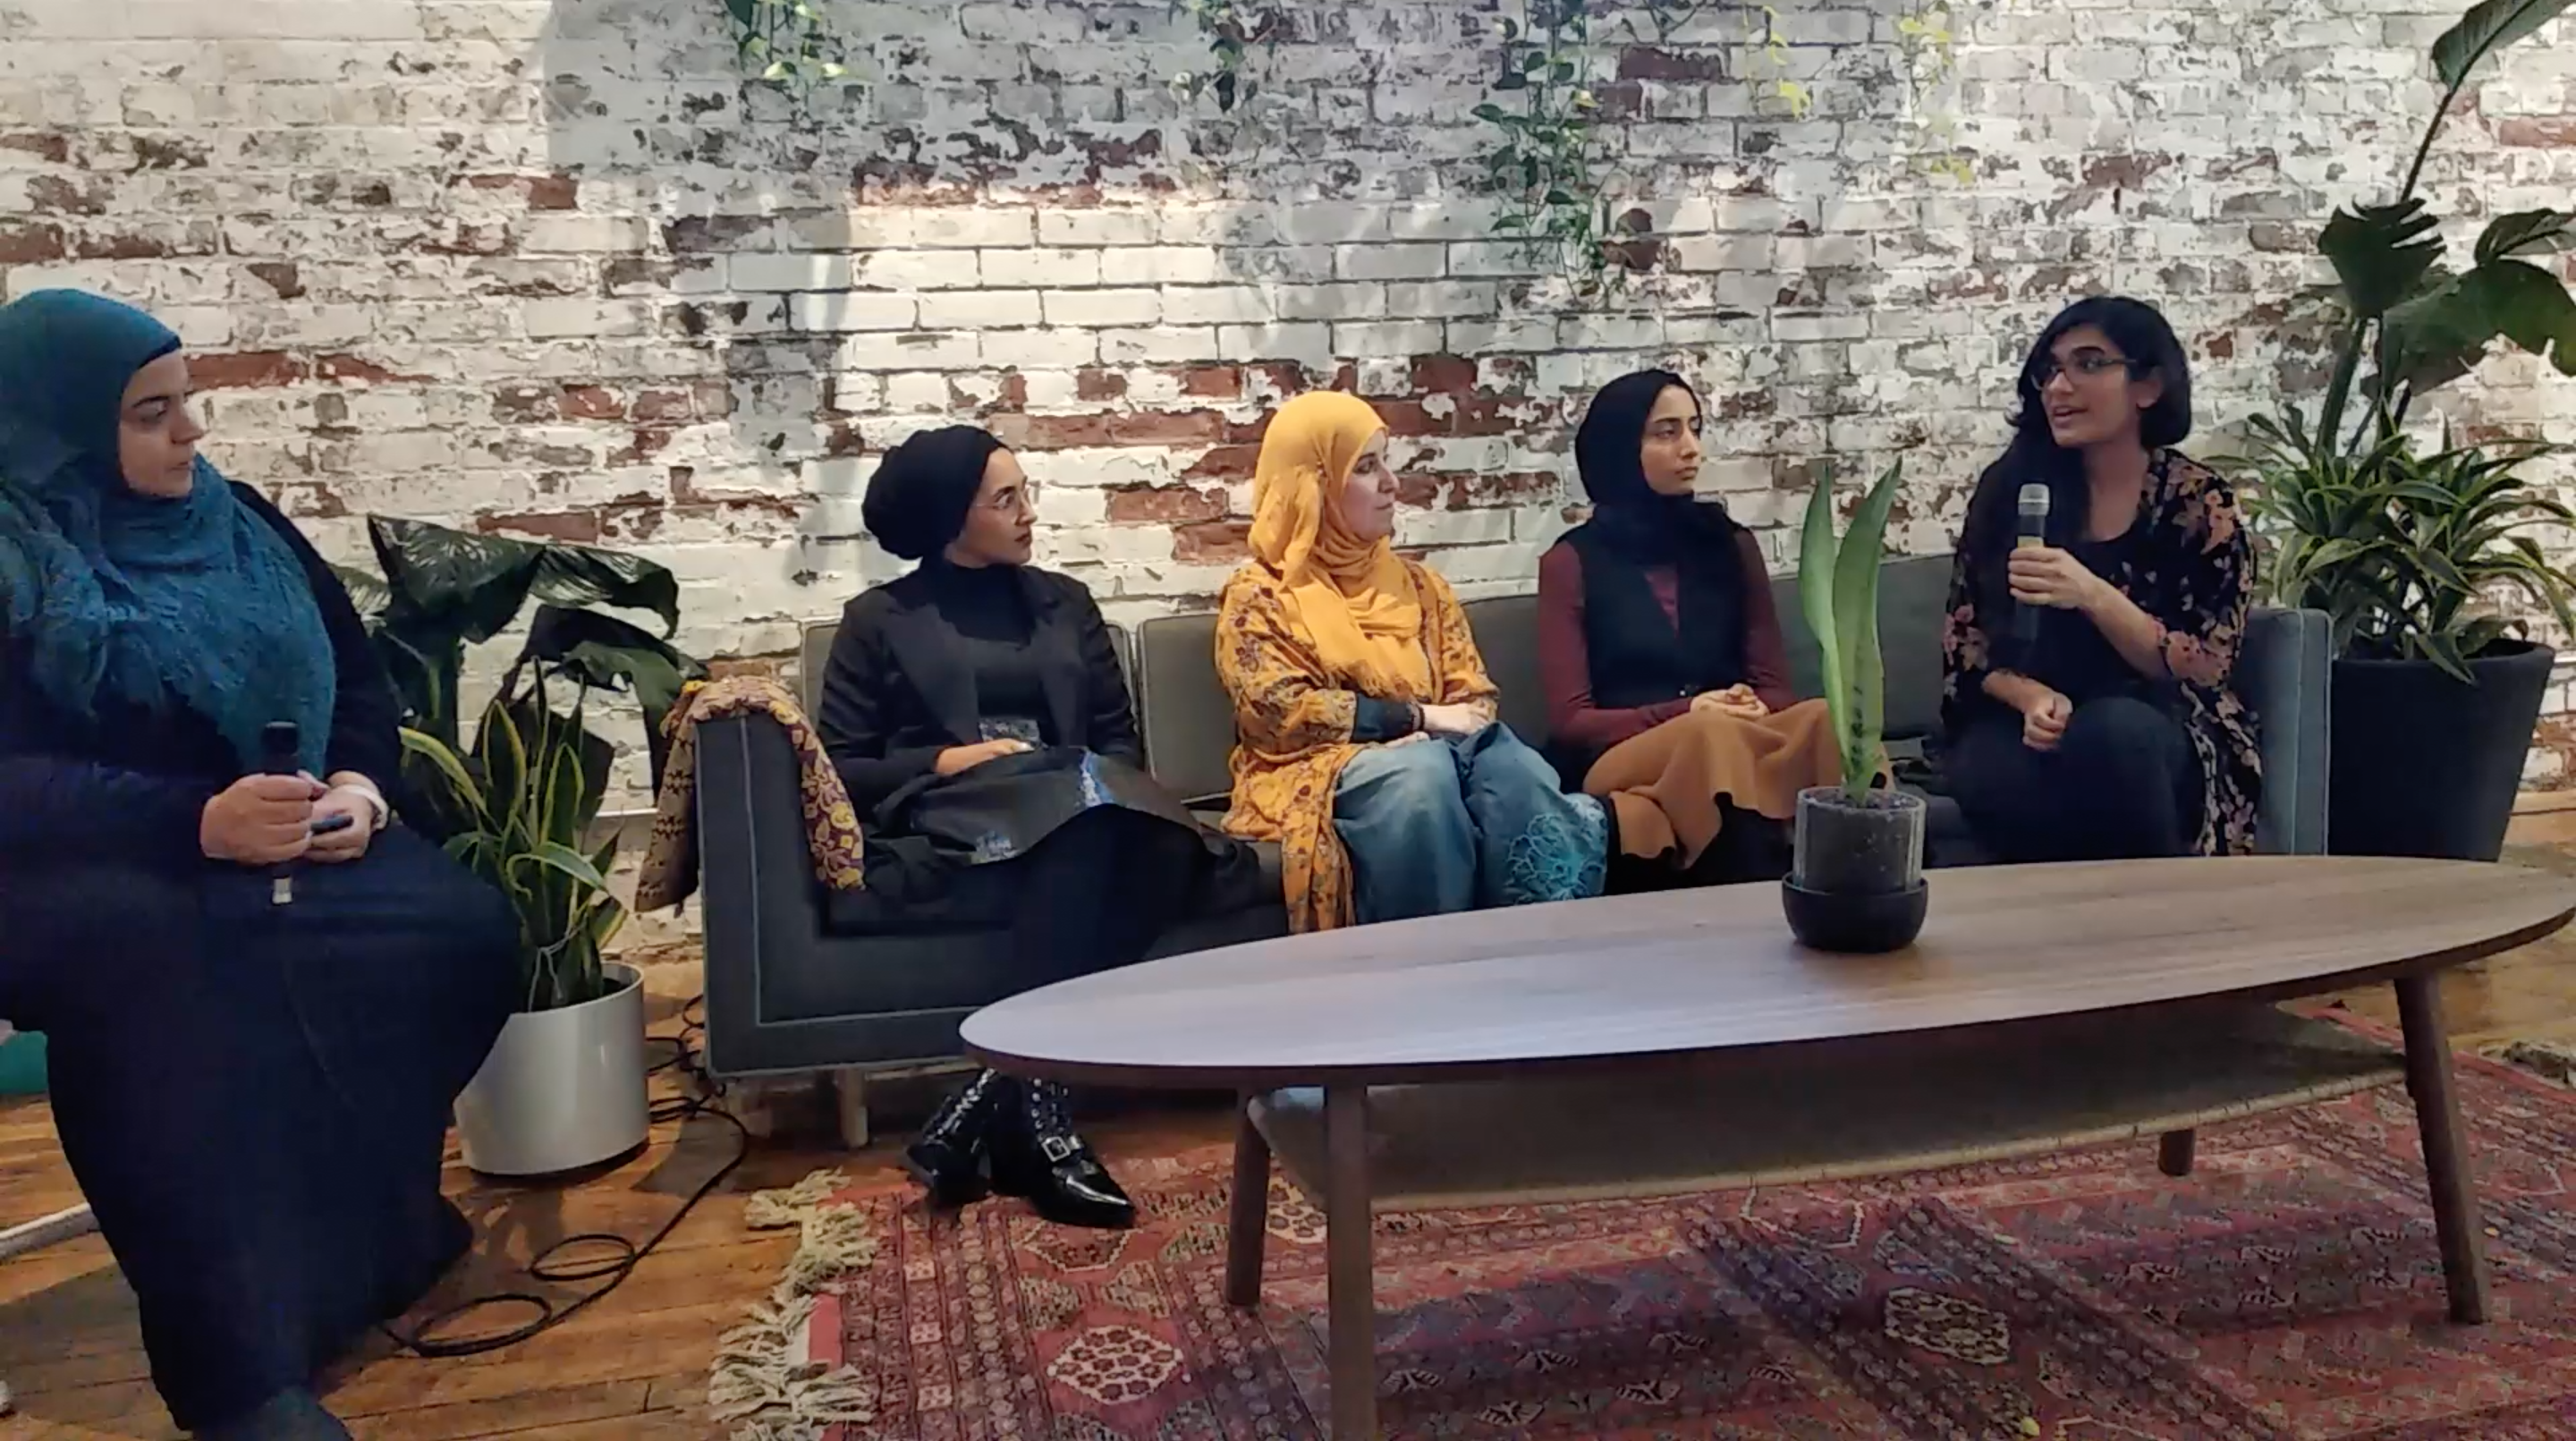 A photograph of 5 people- a moderator and four panelits. The moderator sits on a chair to the left of the photo and four panelists sit on a couch to the right side of the image. The space has a living room feel with a washed brick wall backdrop, there are plants in the space, a warm rug, and a coffee table and plants.